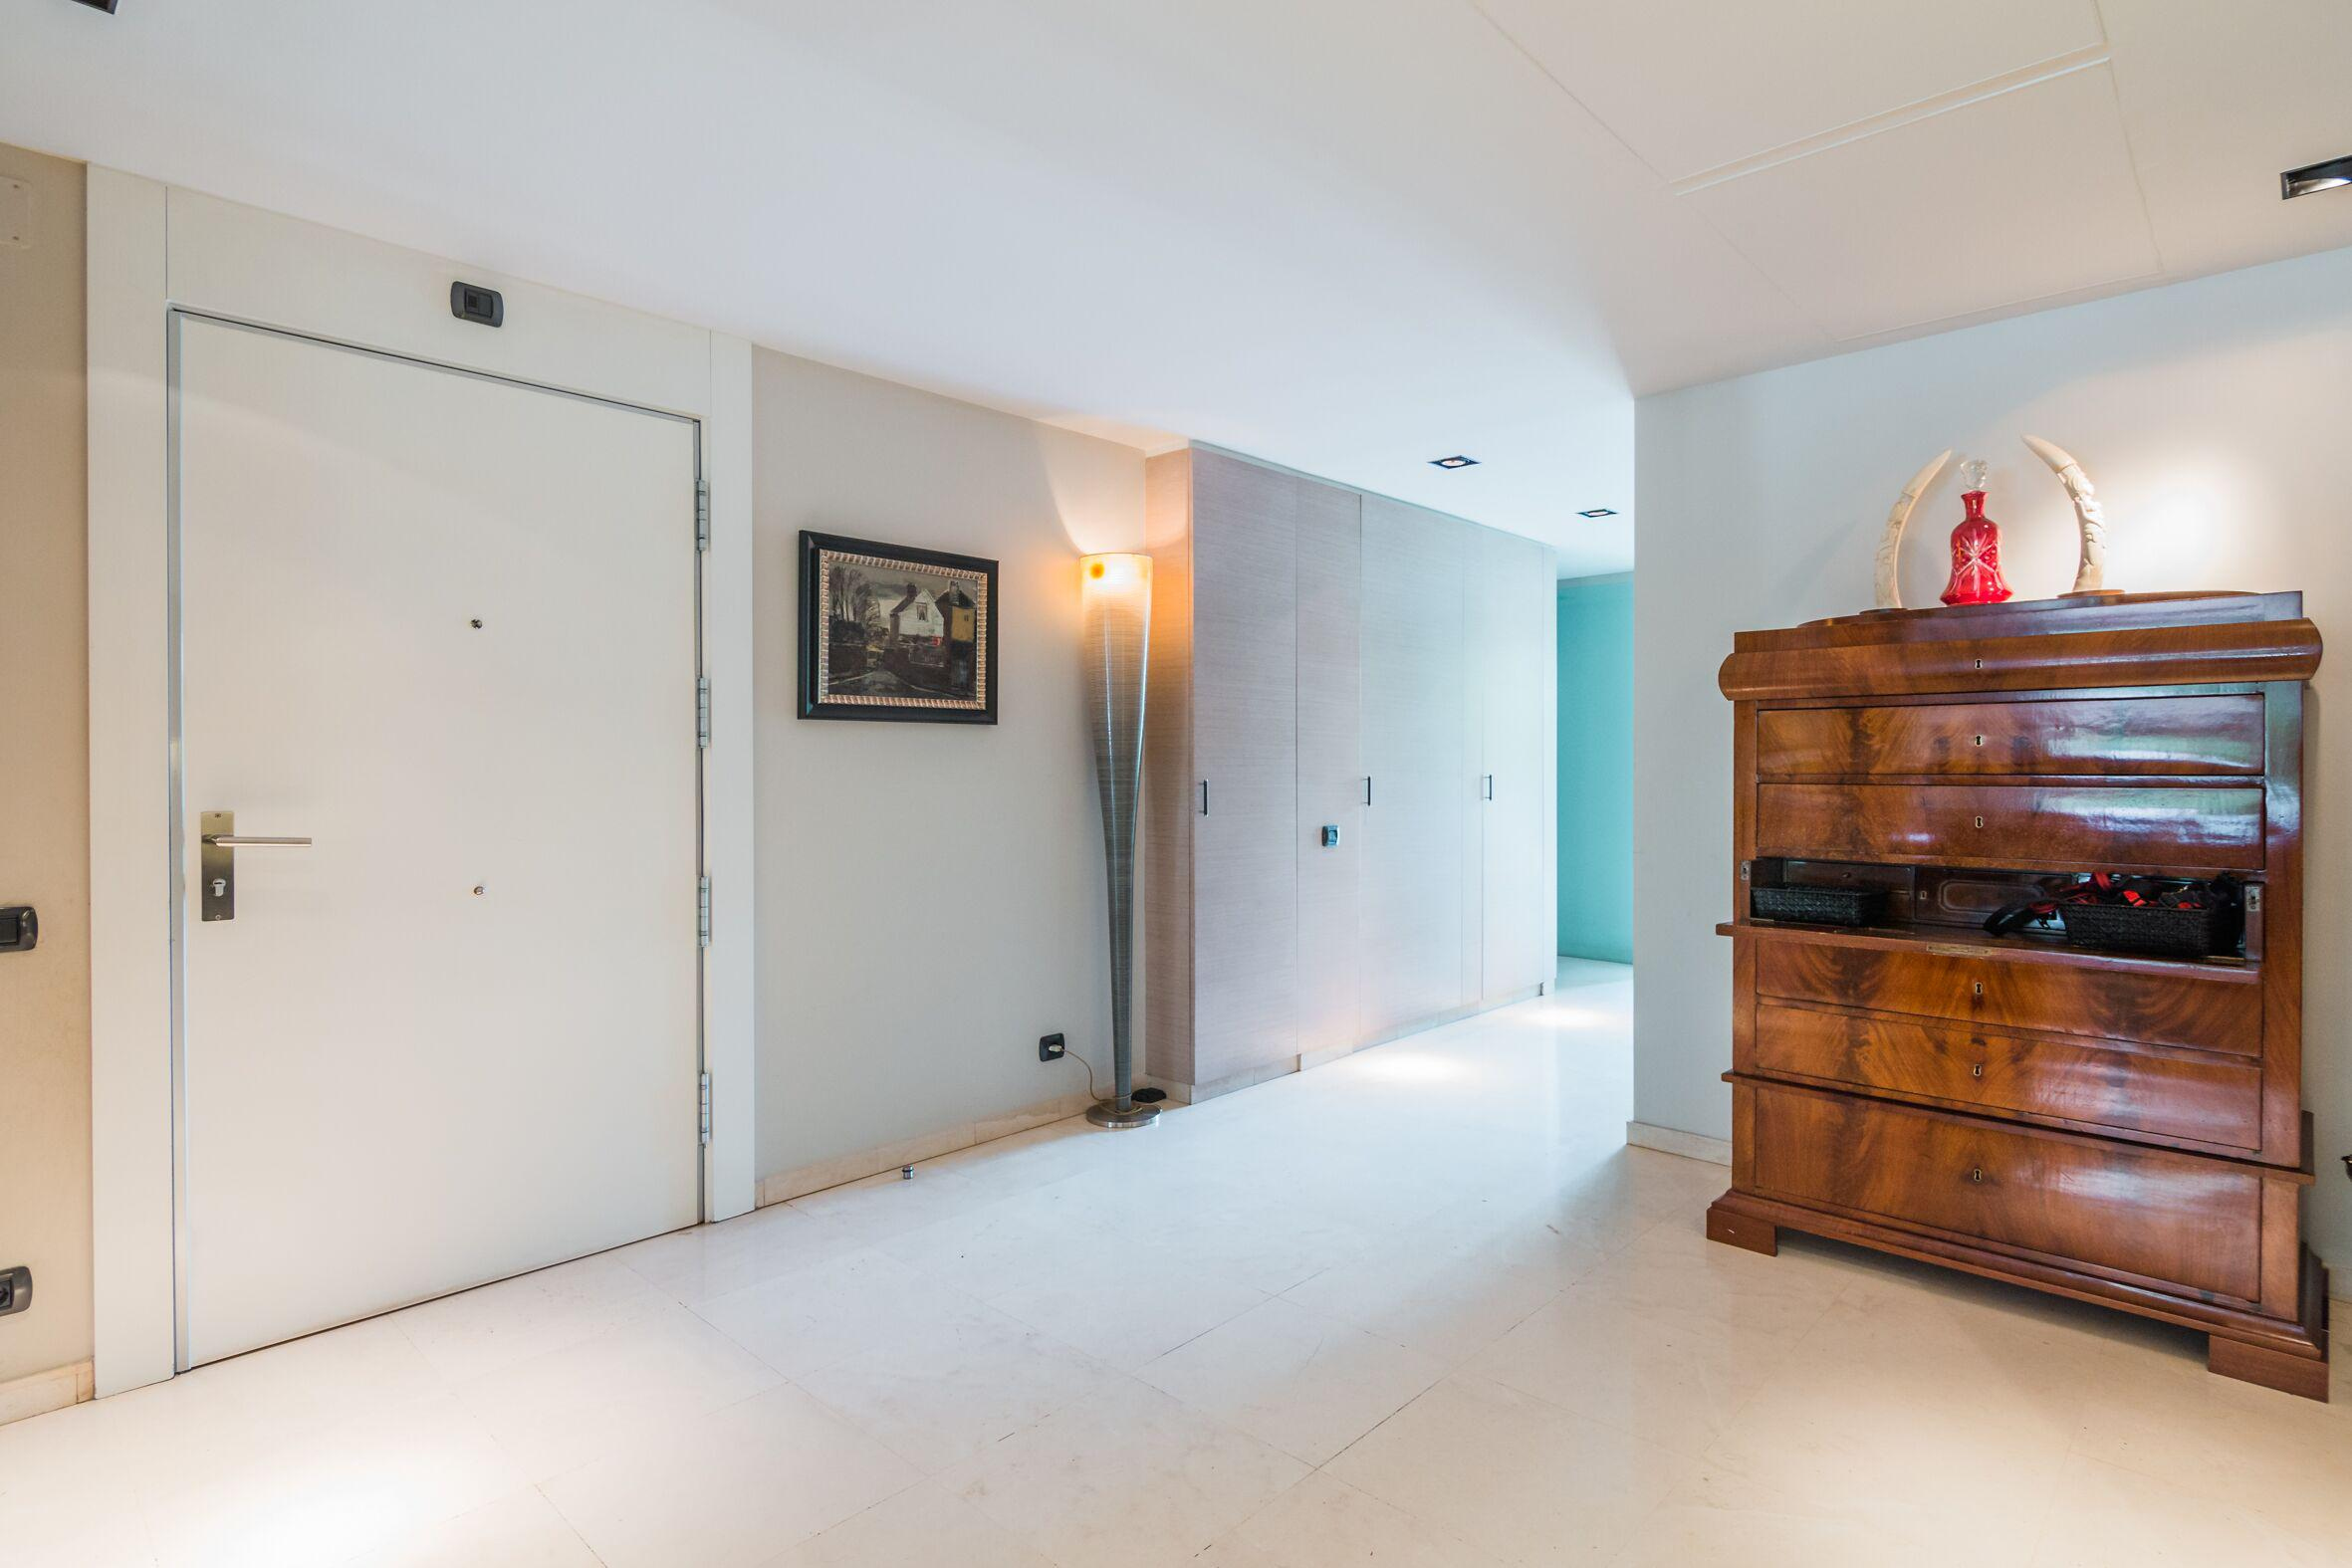 208150 Apartment for sale in Gràcia, Vallcarca and Els Penitents 24